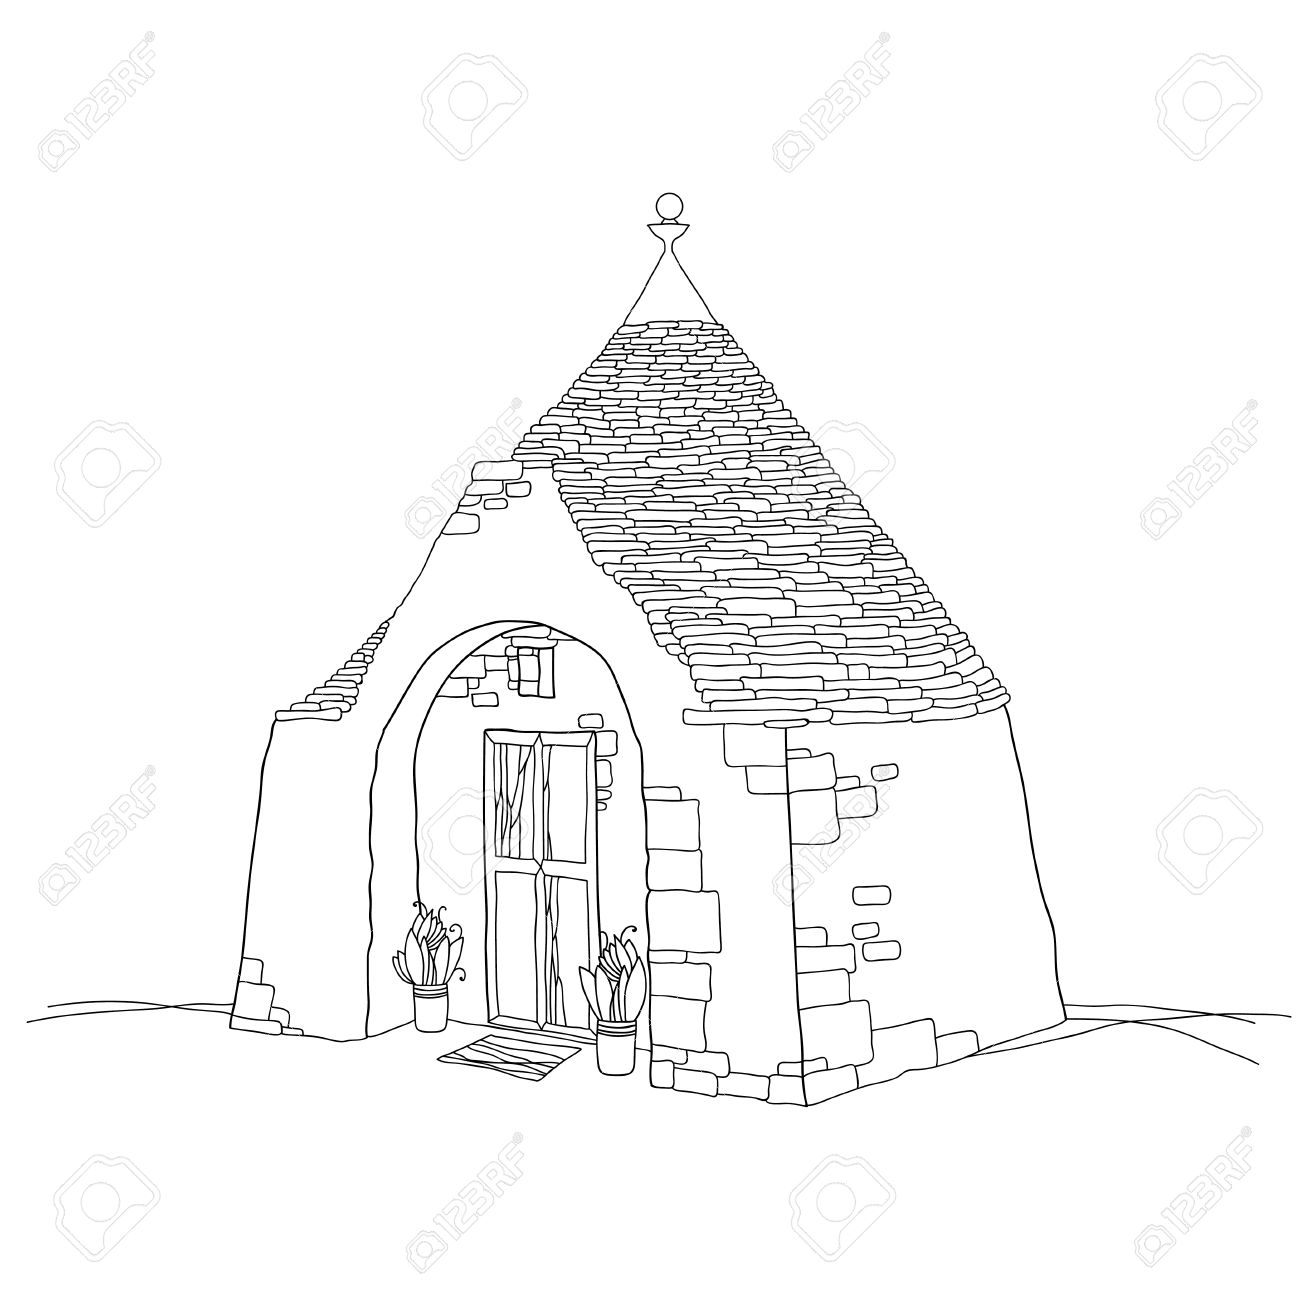 Traditional Trulli House With Conical Roof Isolated On White.